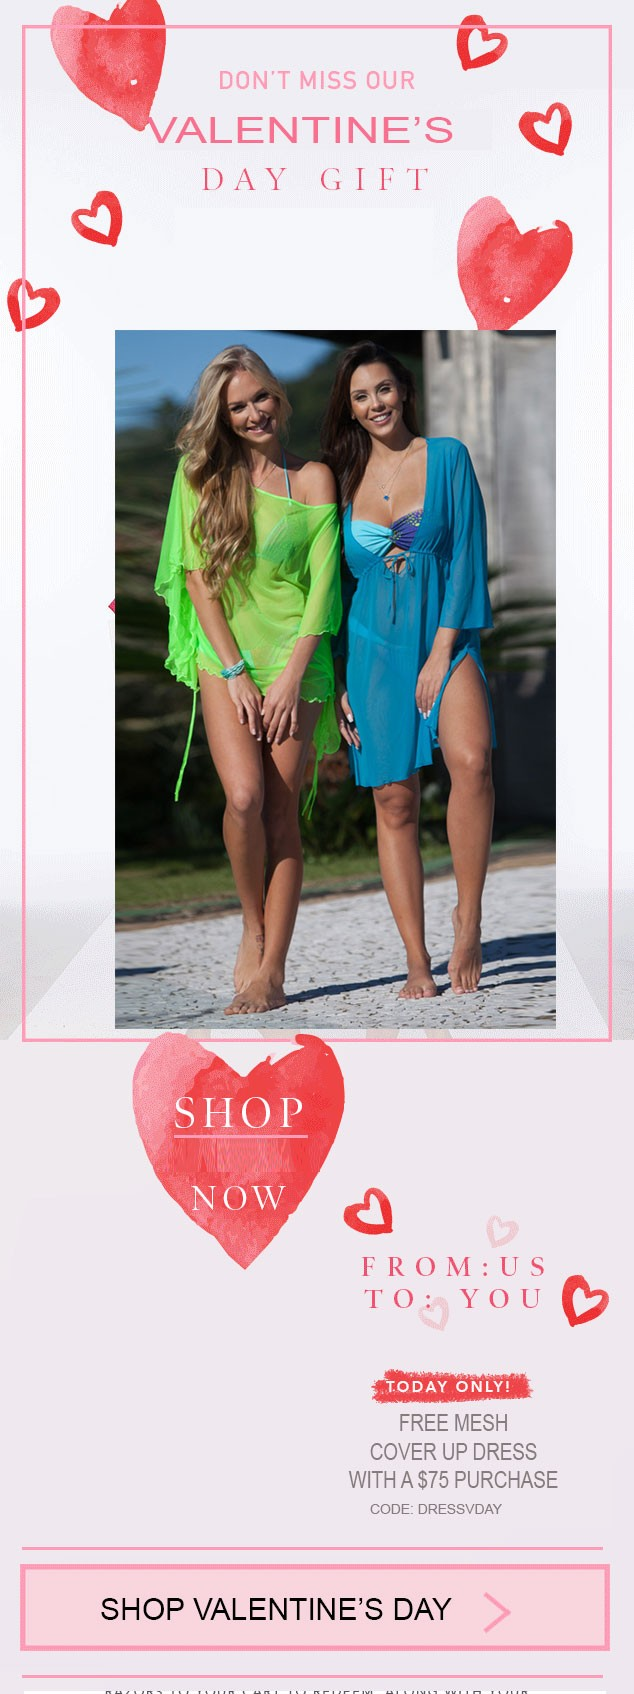 FREE ASSORTED MESH COVER UP DRESS